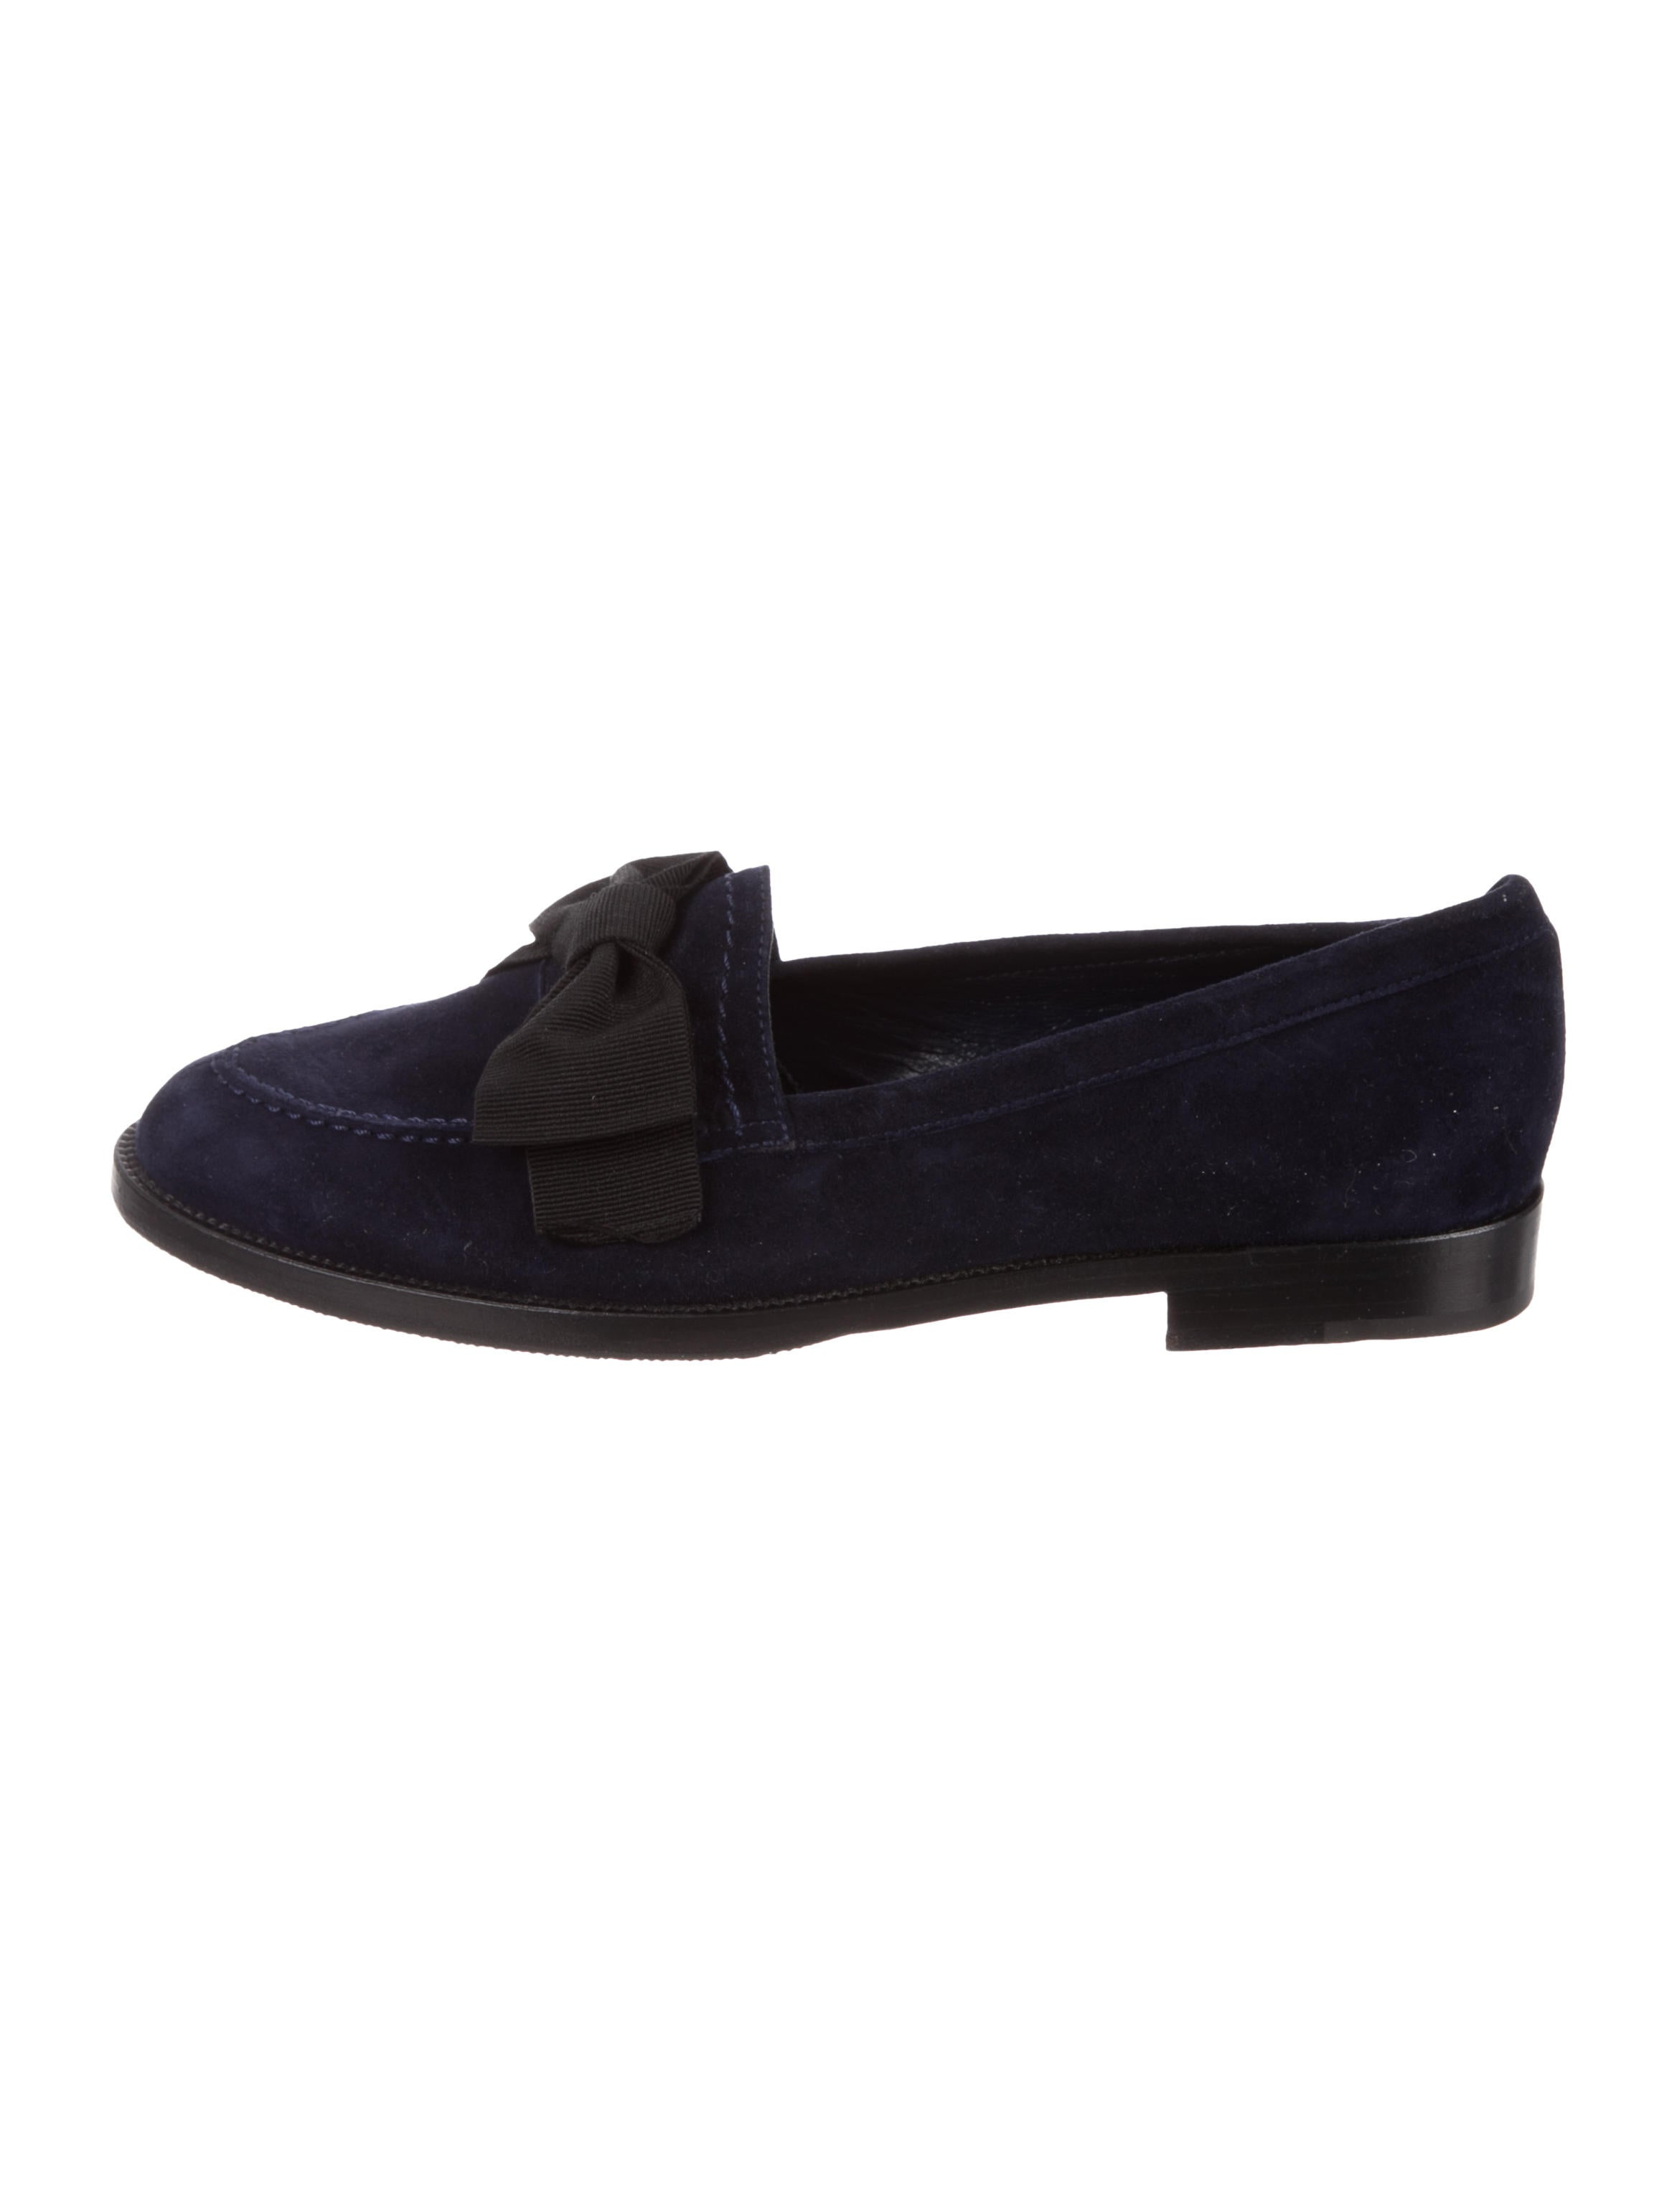 Manolo Blahnik Bow-Accented Suede Loafers cheap sale 2014 newest best sale online amazing price cheap online cheap comfortable for sale official site ngLK813kvp